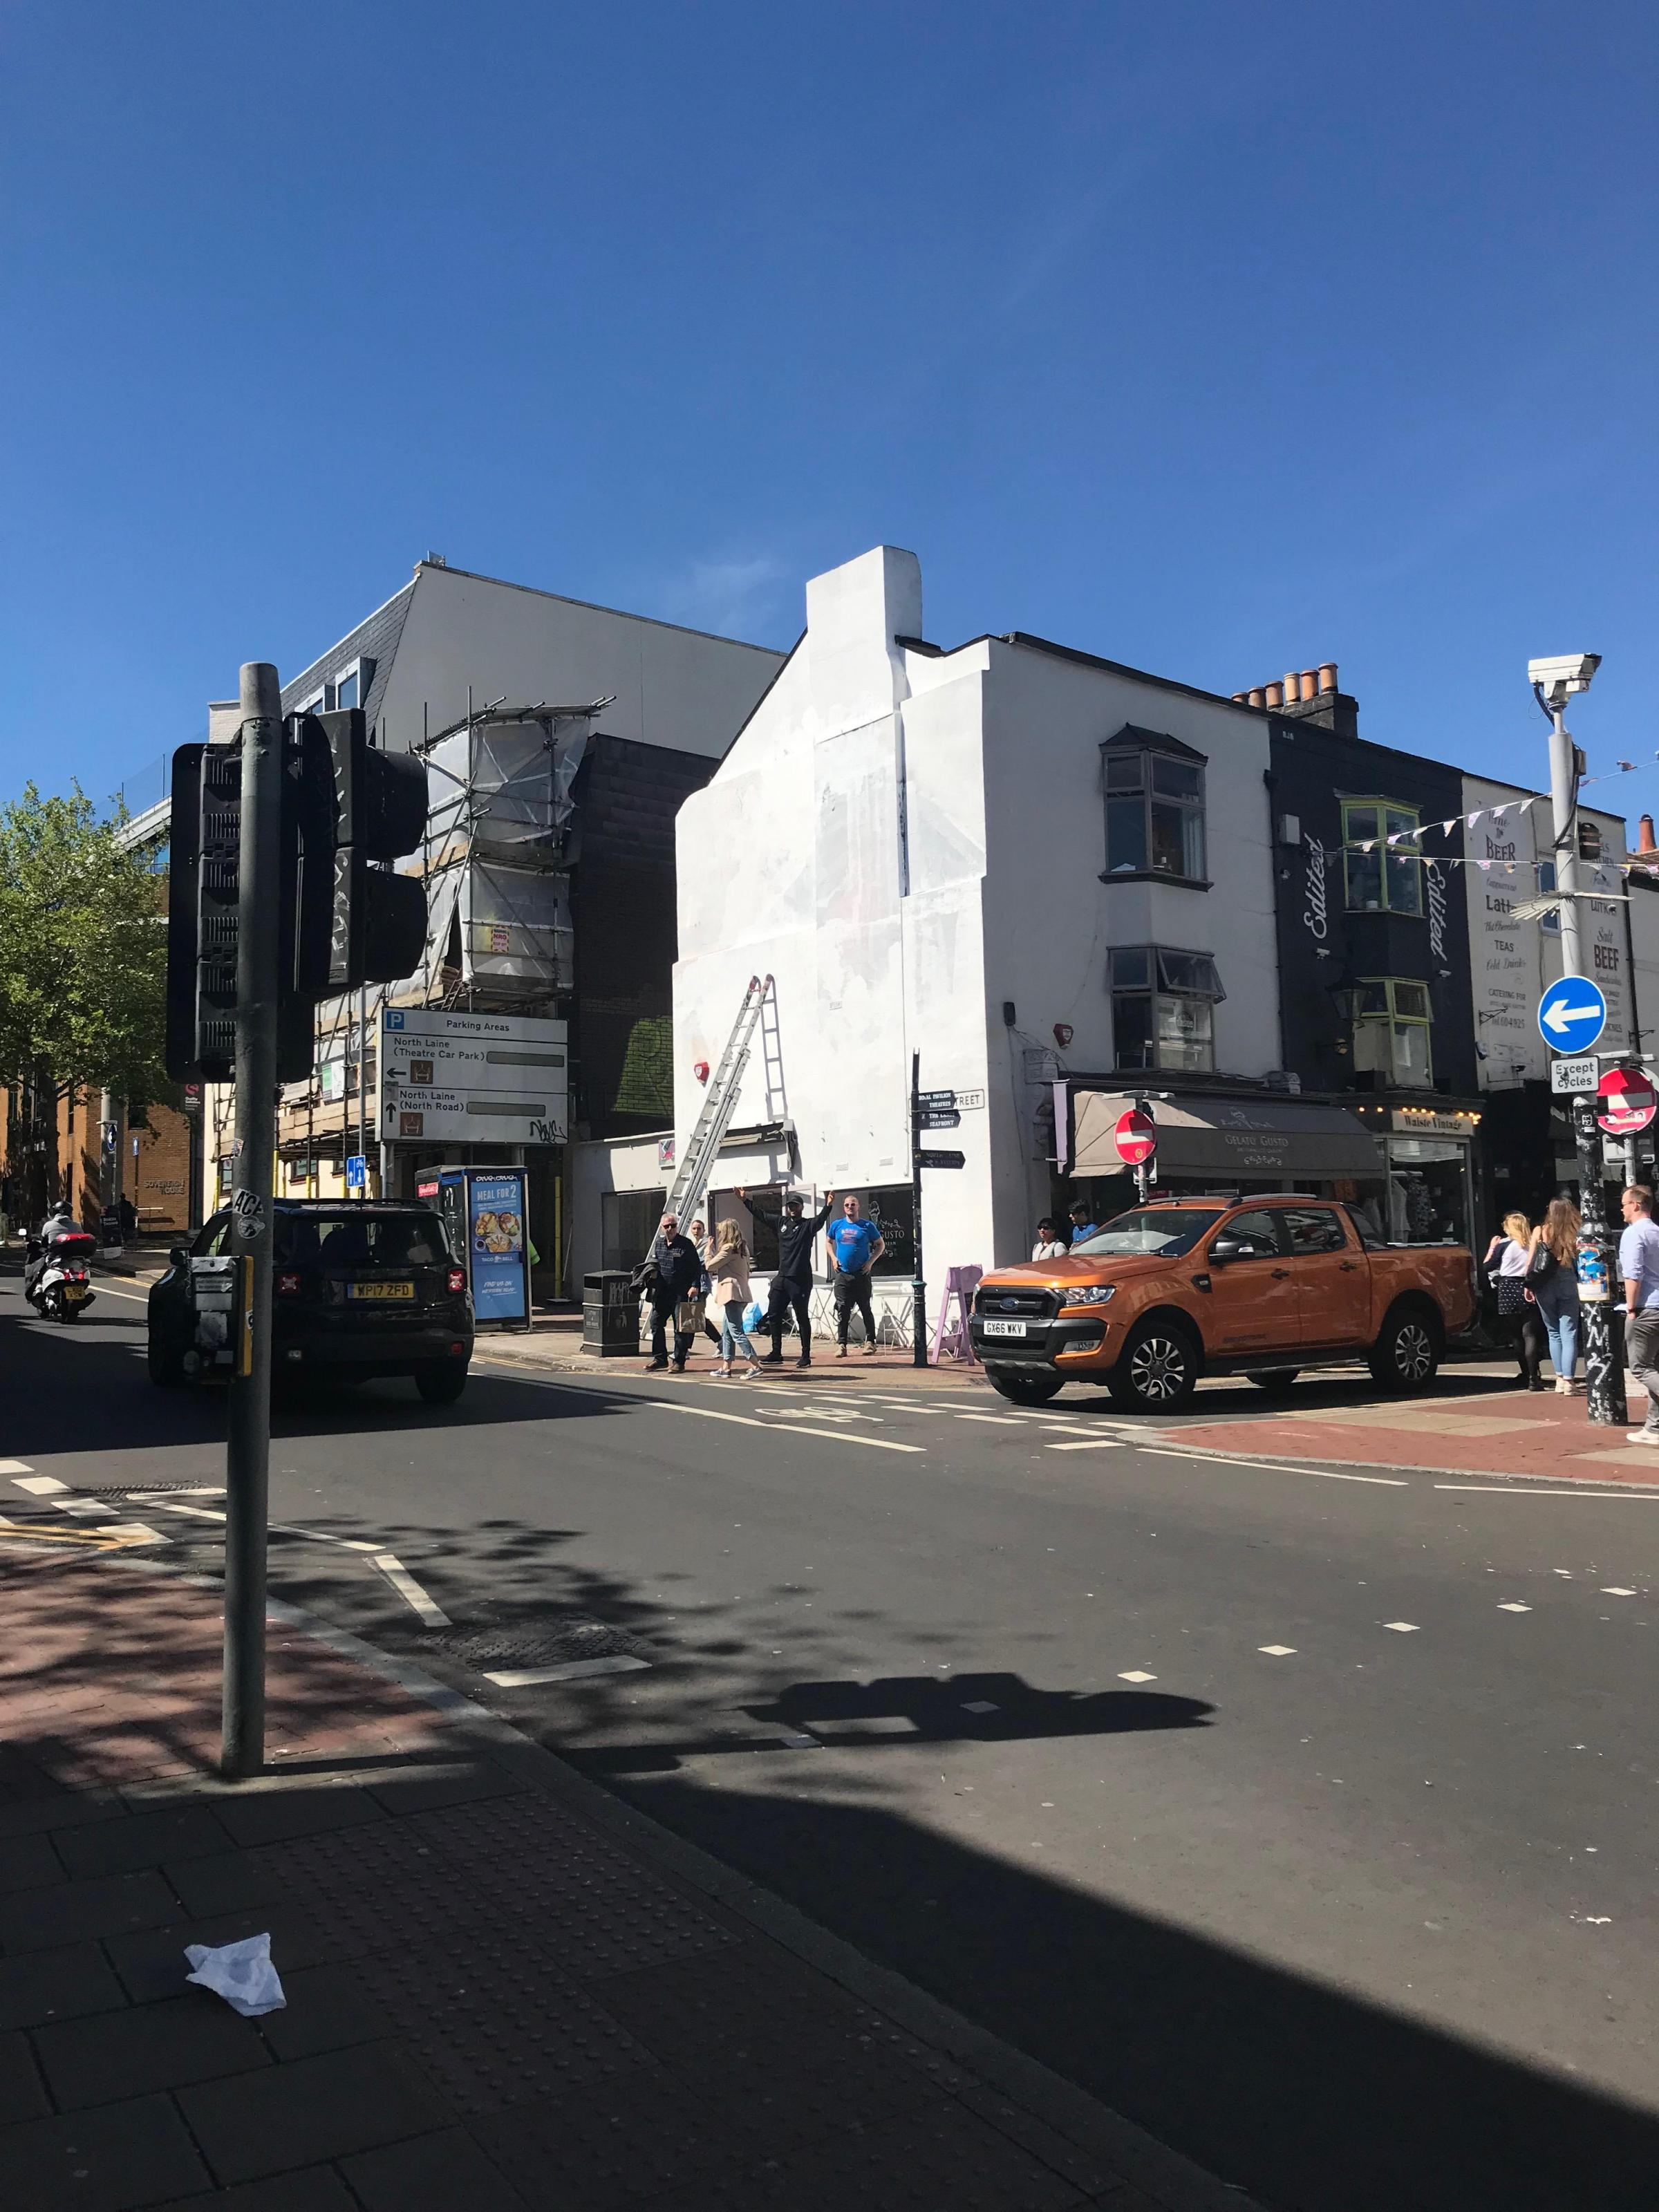 The mural that replaced Bruno in Brighton has now been taken down